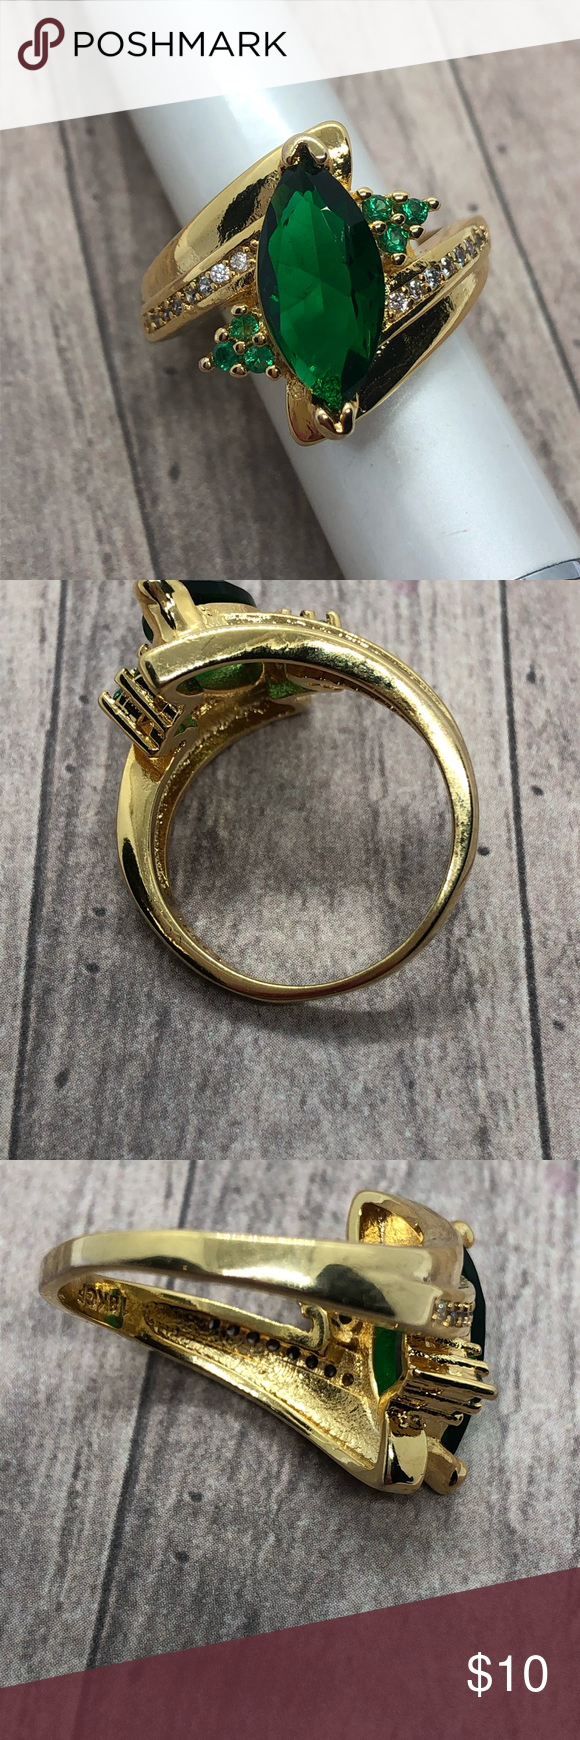 Emerald 10k Gold Filled Costume Ring Size 8 Costume Rings Womens Jewelry Rings Gold